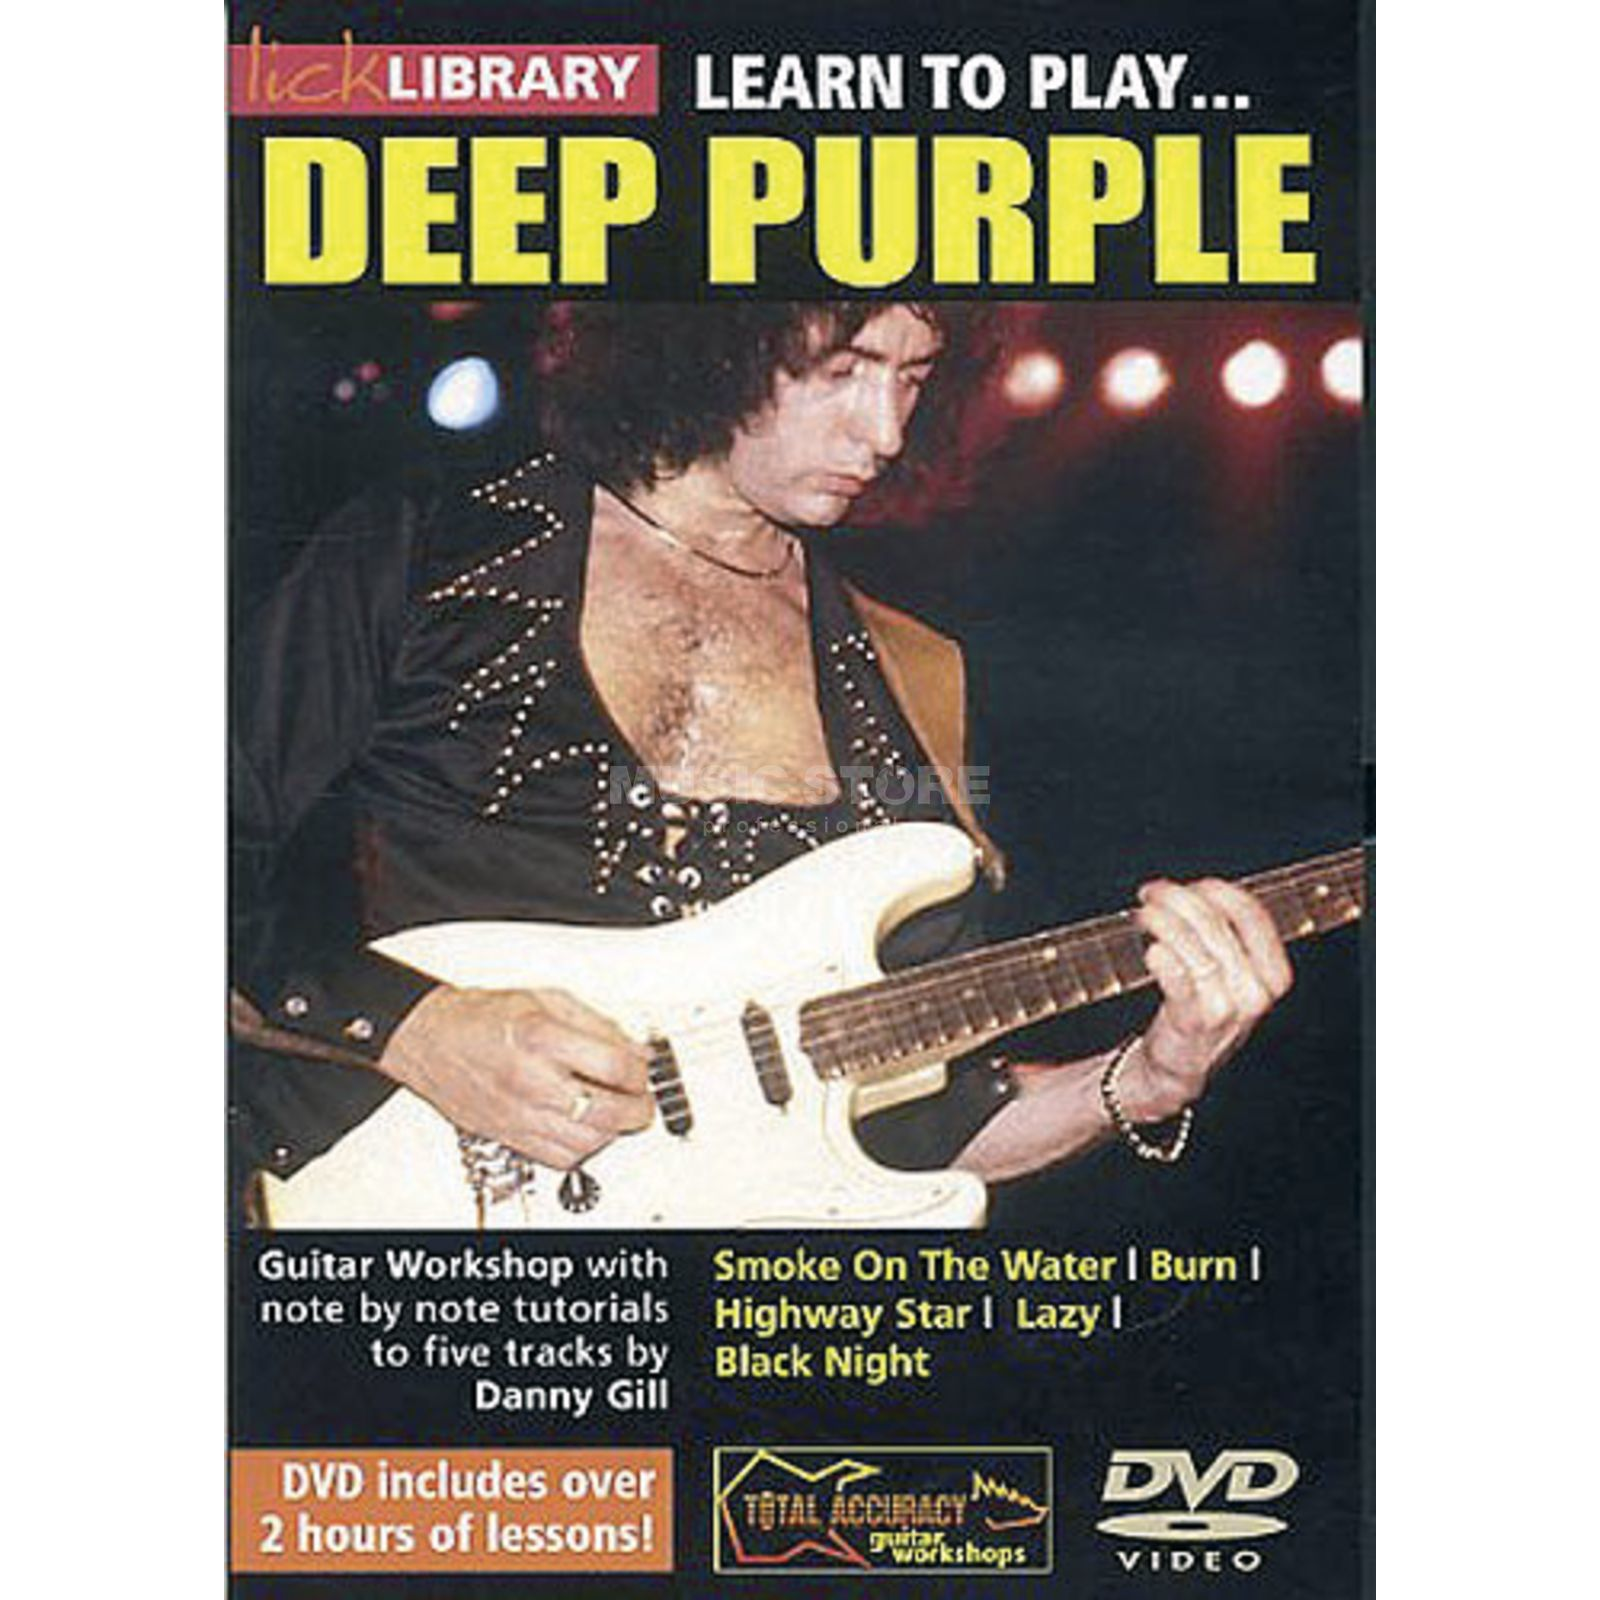 Roadrock International Lick Library: Learn To Play Deep Purple DVD Produktbillede